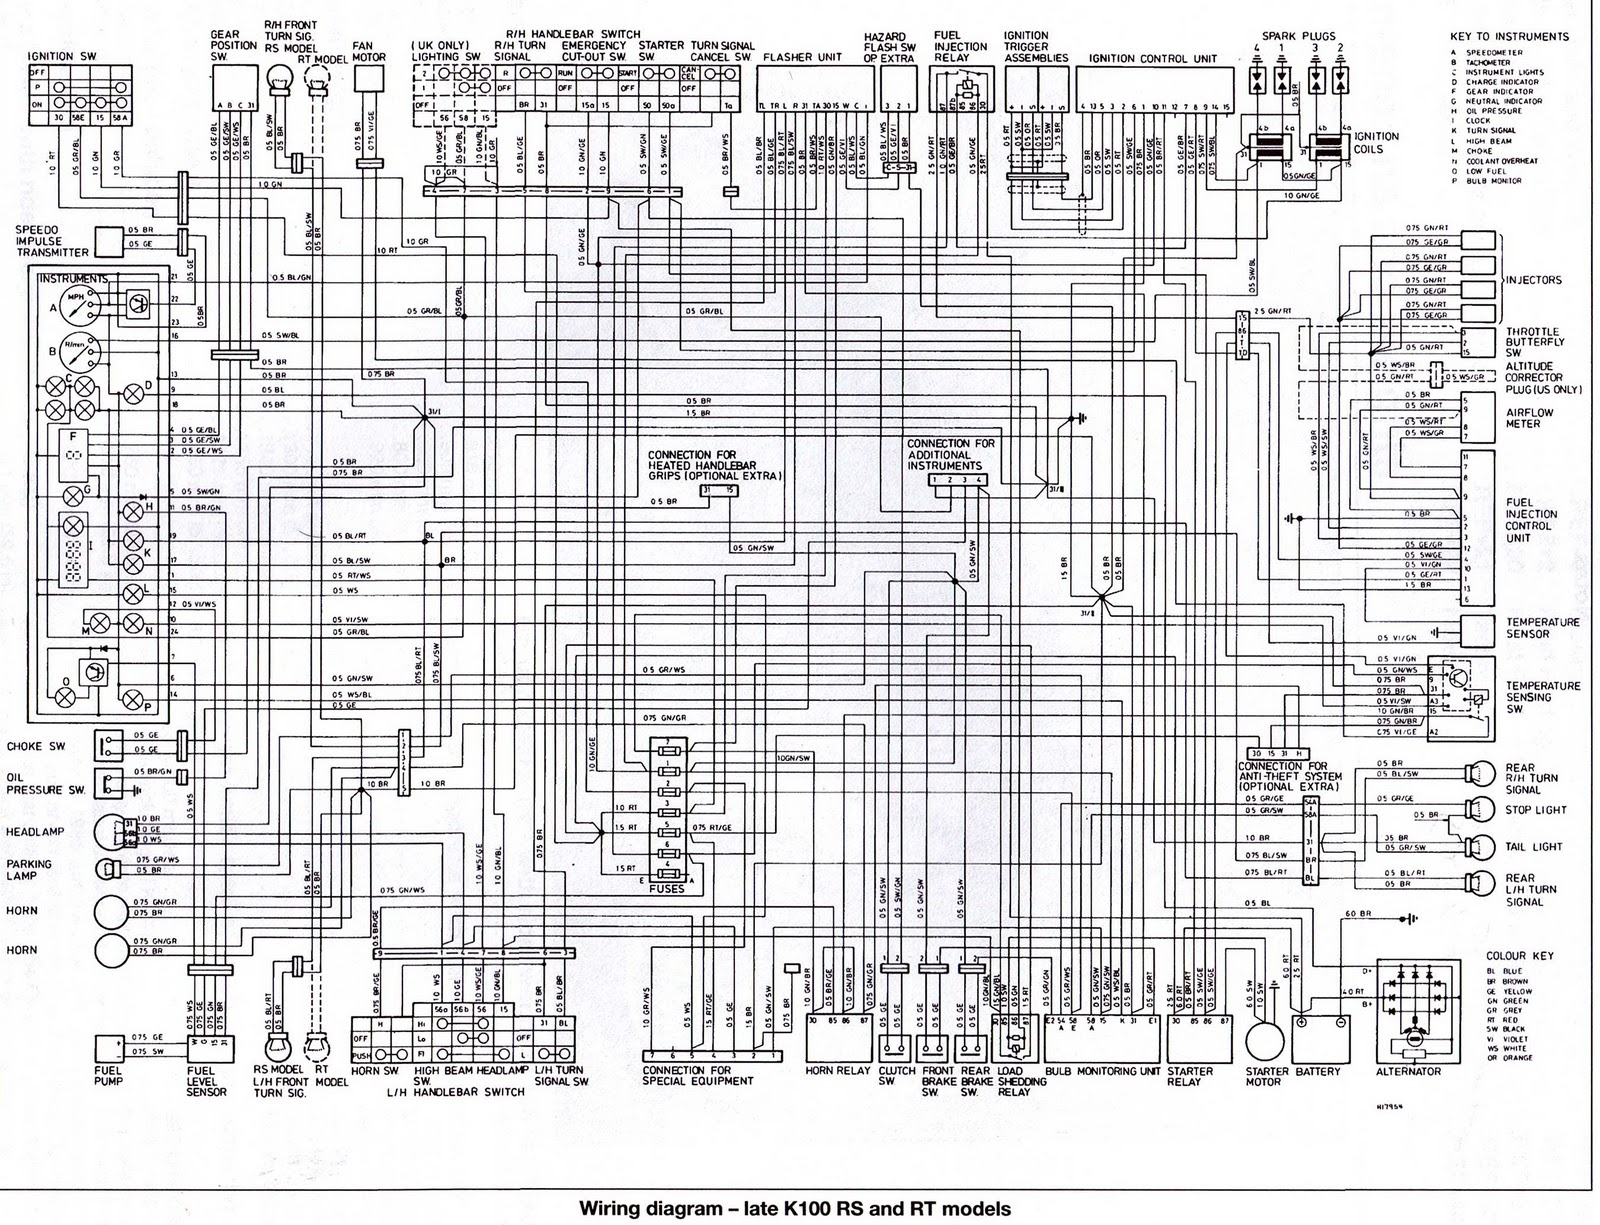 BMW+KR100RS RT+Wiring+Diagram bmw wiring diagram bmw wiring diagrams e39 \u2022 wiring diagrams j bmw e46 wiring diagram download at honlapkeszites.co